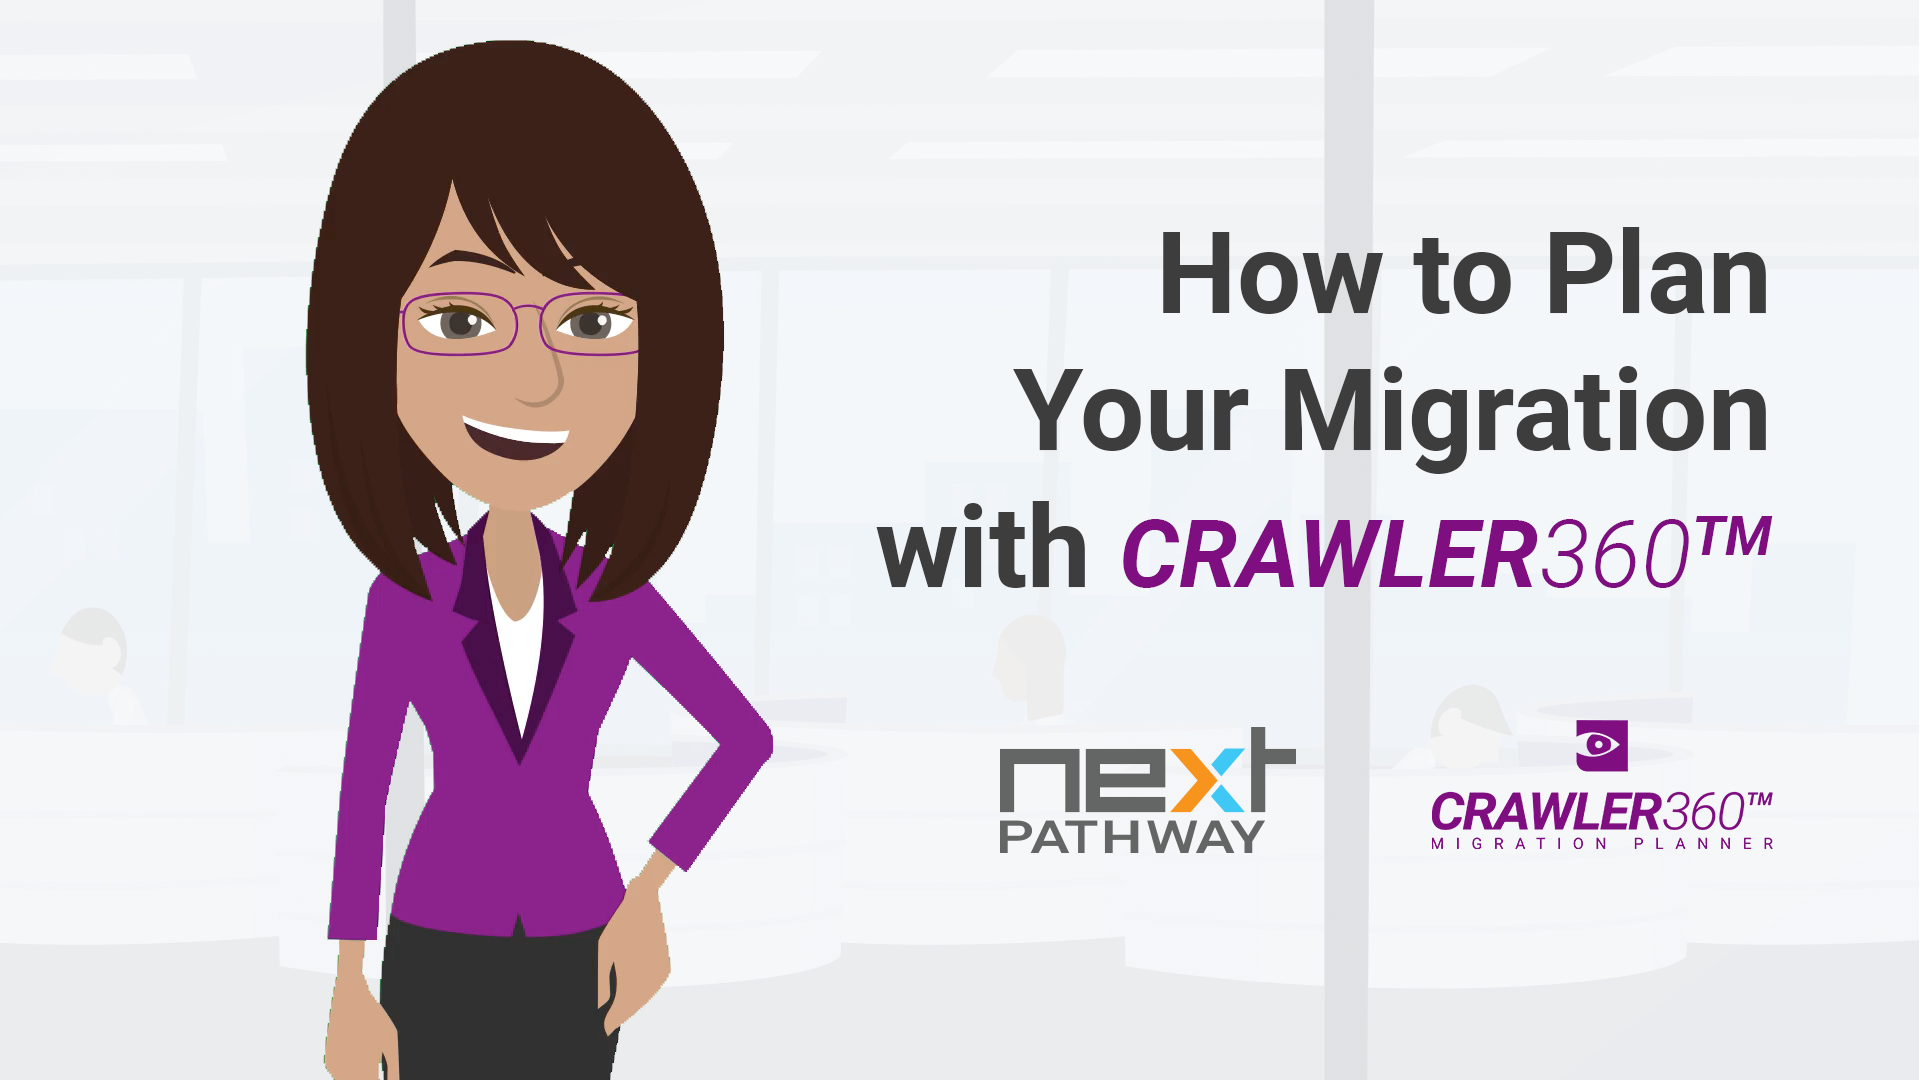 Plan Your Migration with Crawler360™-1